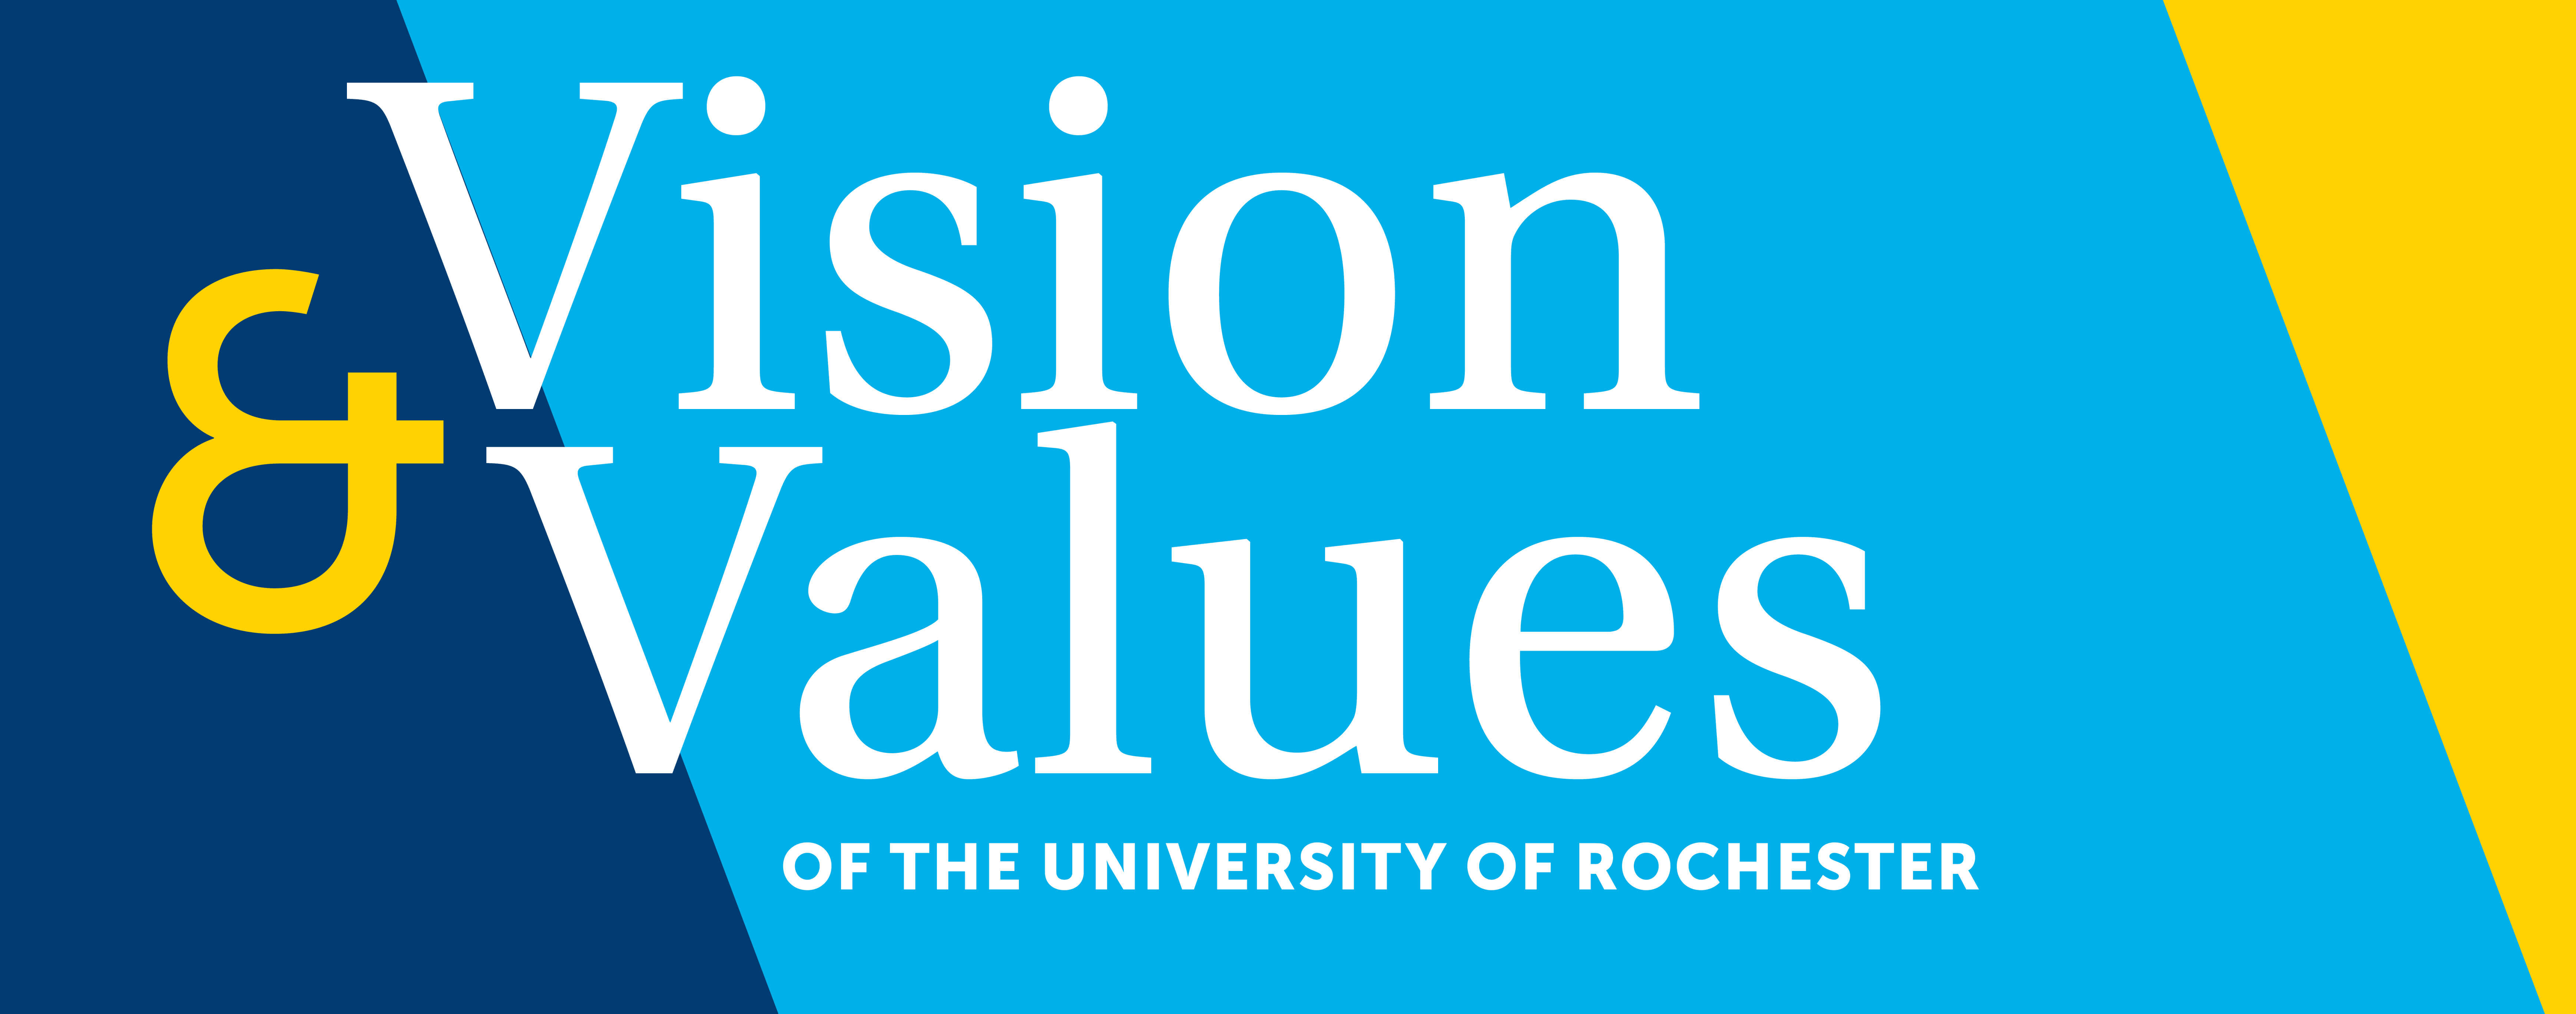 text reads VISION AND VALUES OF THE UNIVERSITY OF ROCHESTER